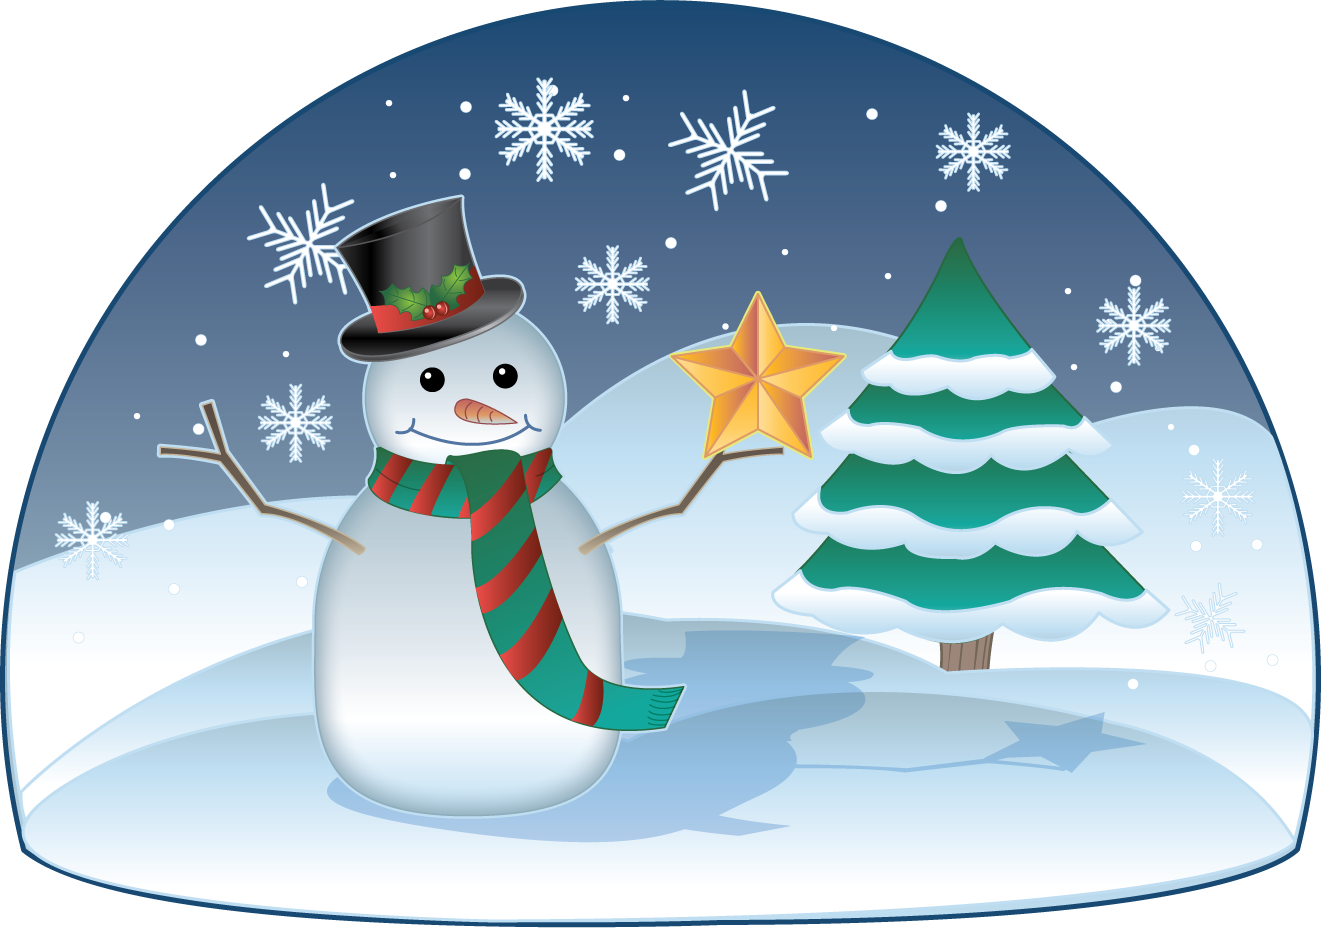 December clipart scene. Winter free download clip